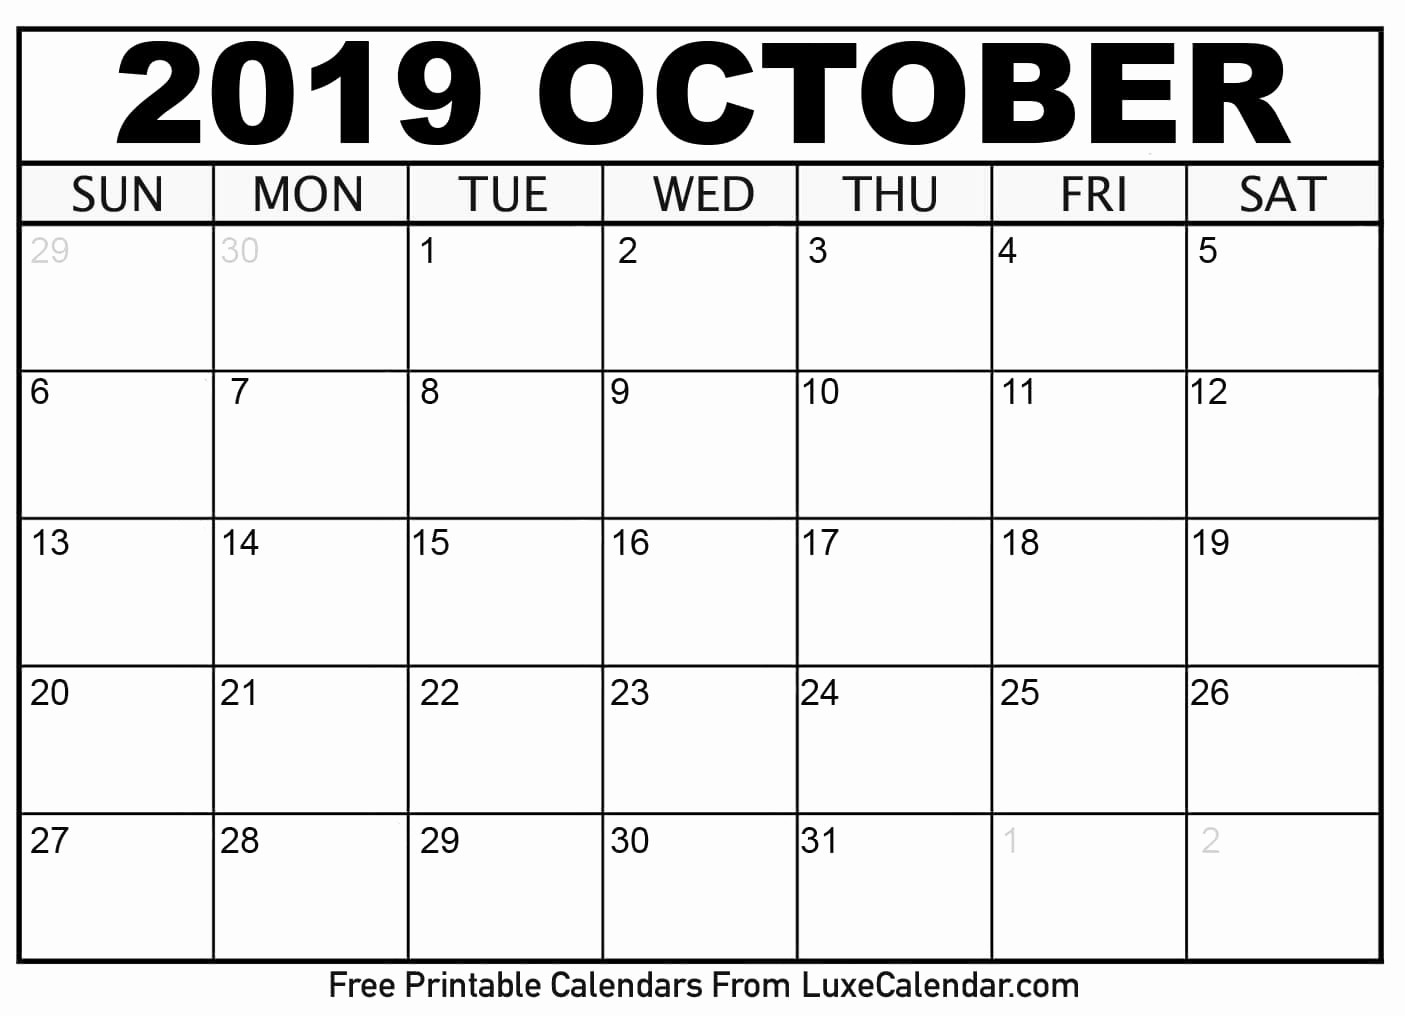 2019 Printable Calendar by Month Best Of Blank October 2019 Printable Calendar Luxe Calendar